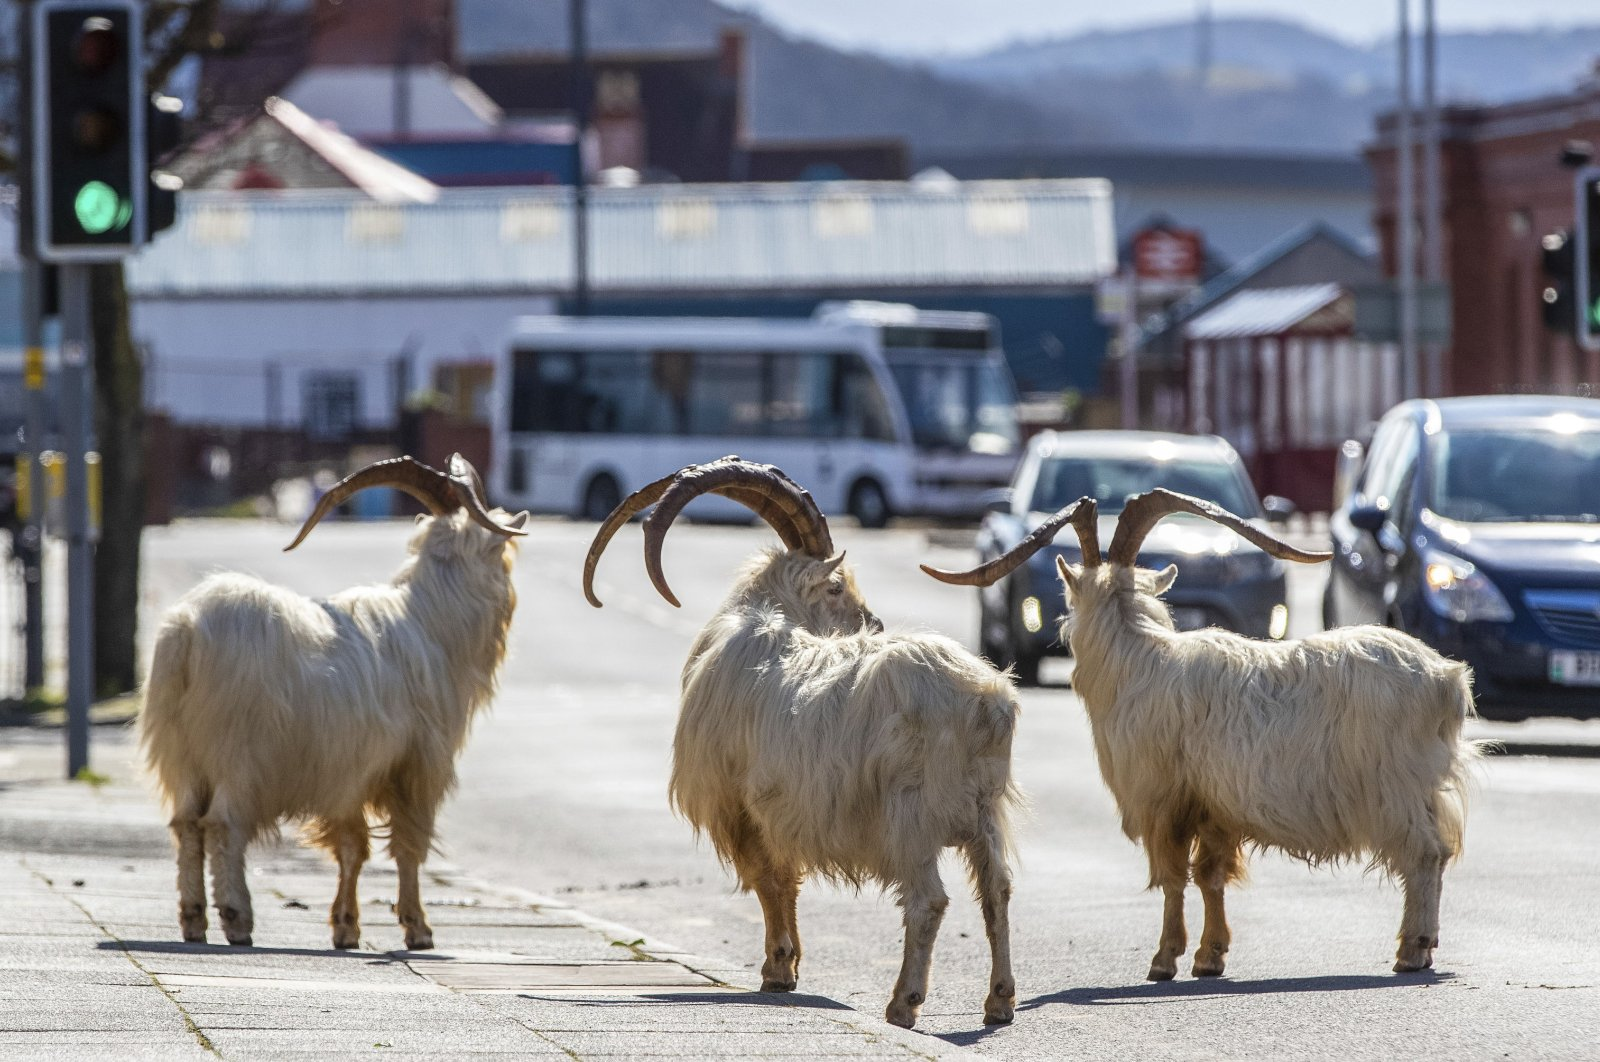 A herd of goats walk the quiet streets in Llandudno, North Wales, Tuesday, March 31, 2020. (AP Photo)